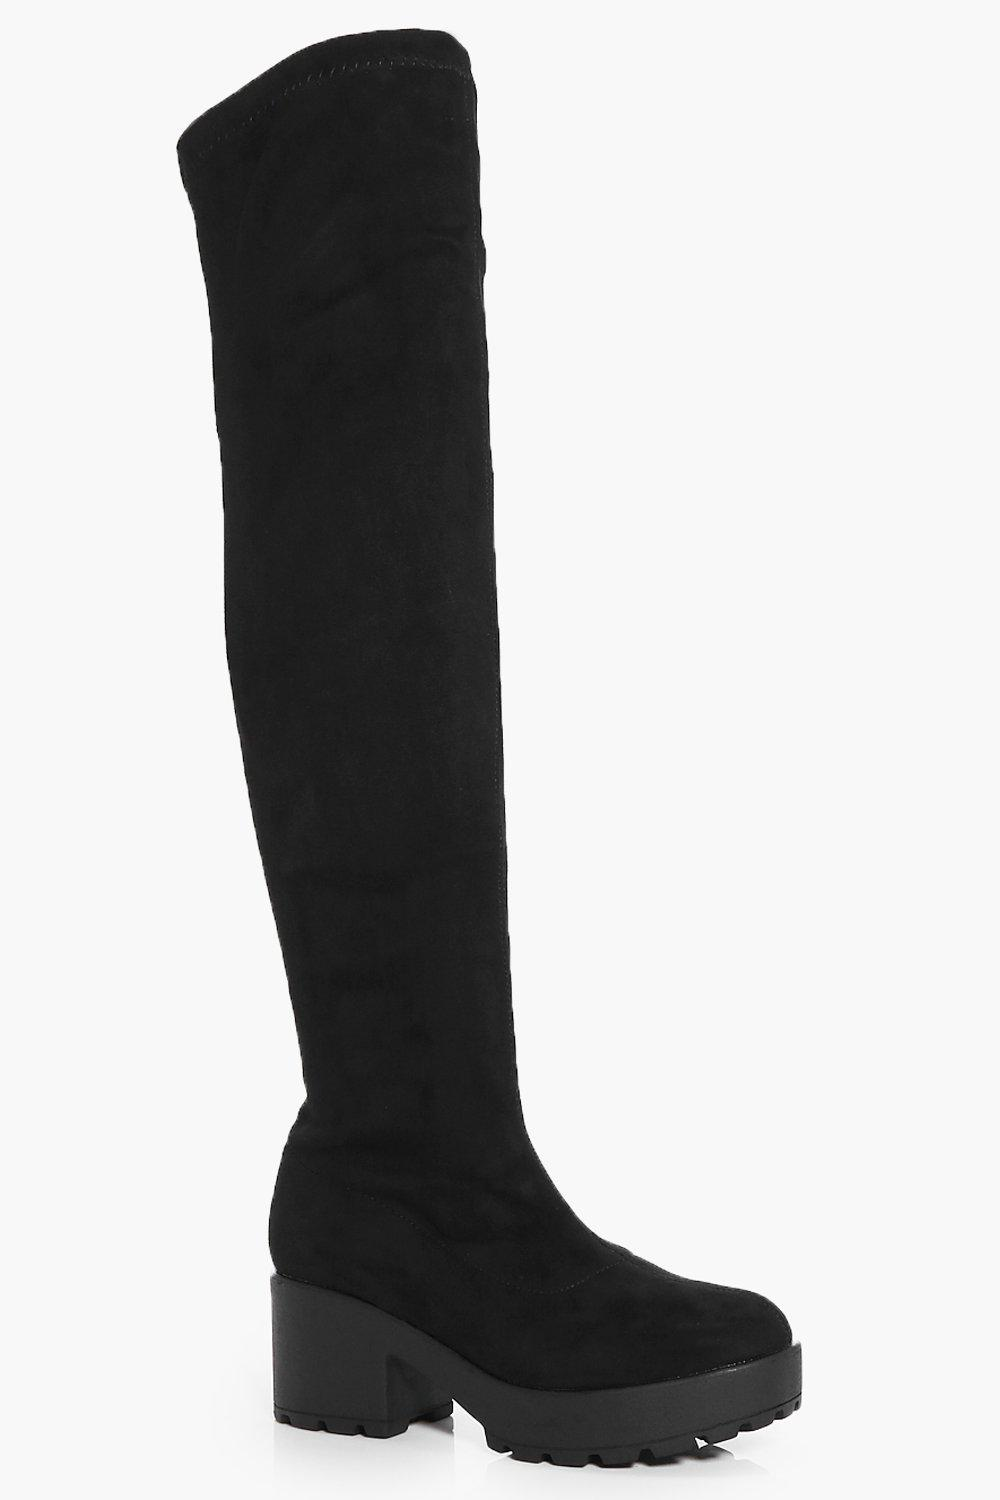 Tia Cleated Chunky Sole Over The Knee Boot